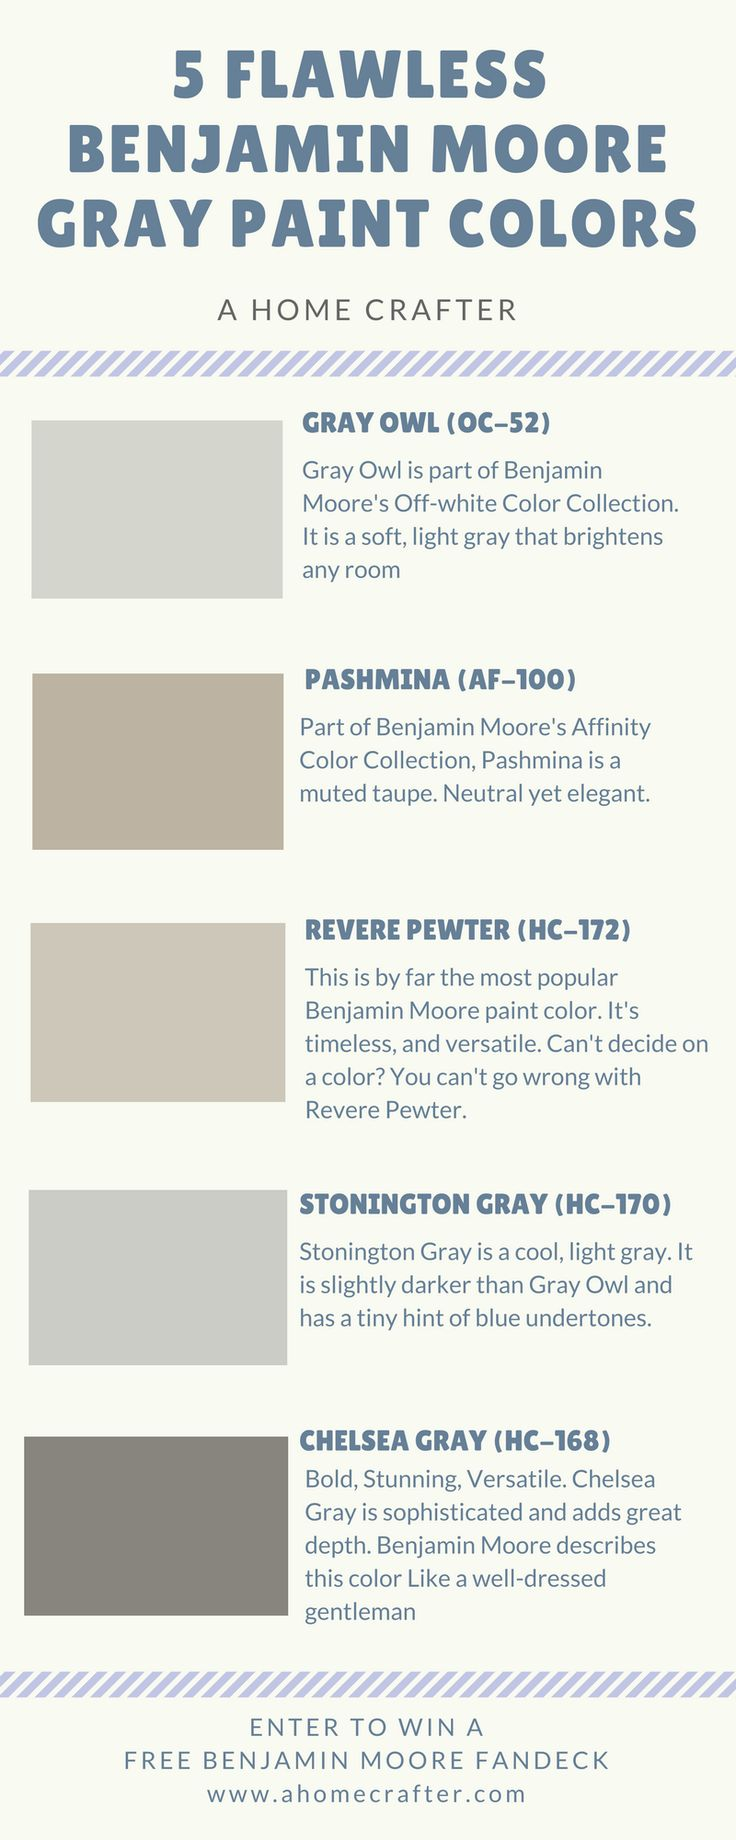 I personally love these 5 Benjamin Moore Gray Paint Colors. They are soft, versatile and timeless. These are 5 colors you simply cannot go wrong with. 1. Revere Pewter HC-172 Photo by Michael Abrams Limited – Search contemporary living room design ideas Photo by CROSS – Look for contemporary dining room pictures Photo by Michael … … Continue reading →